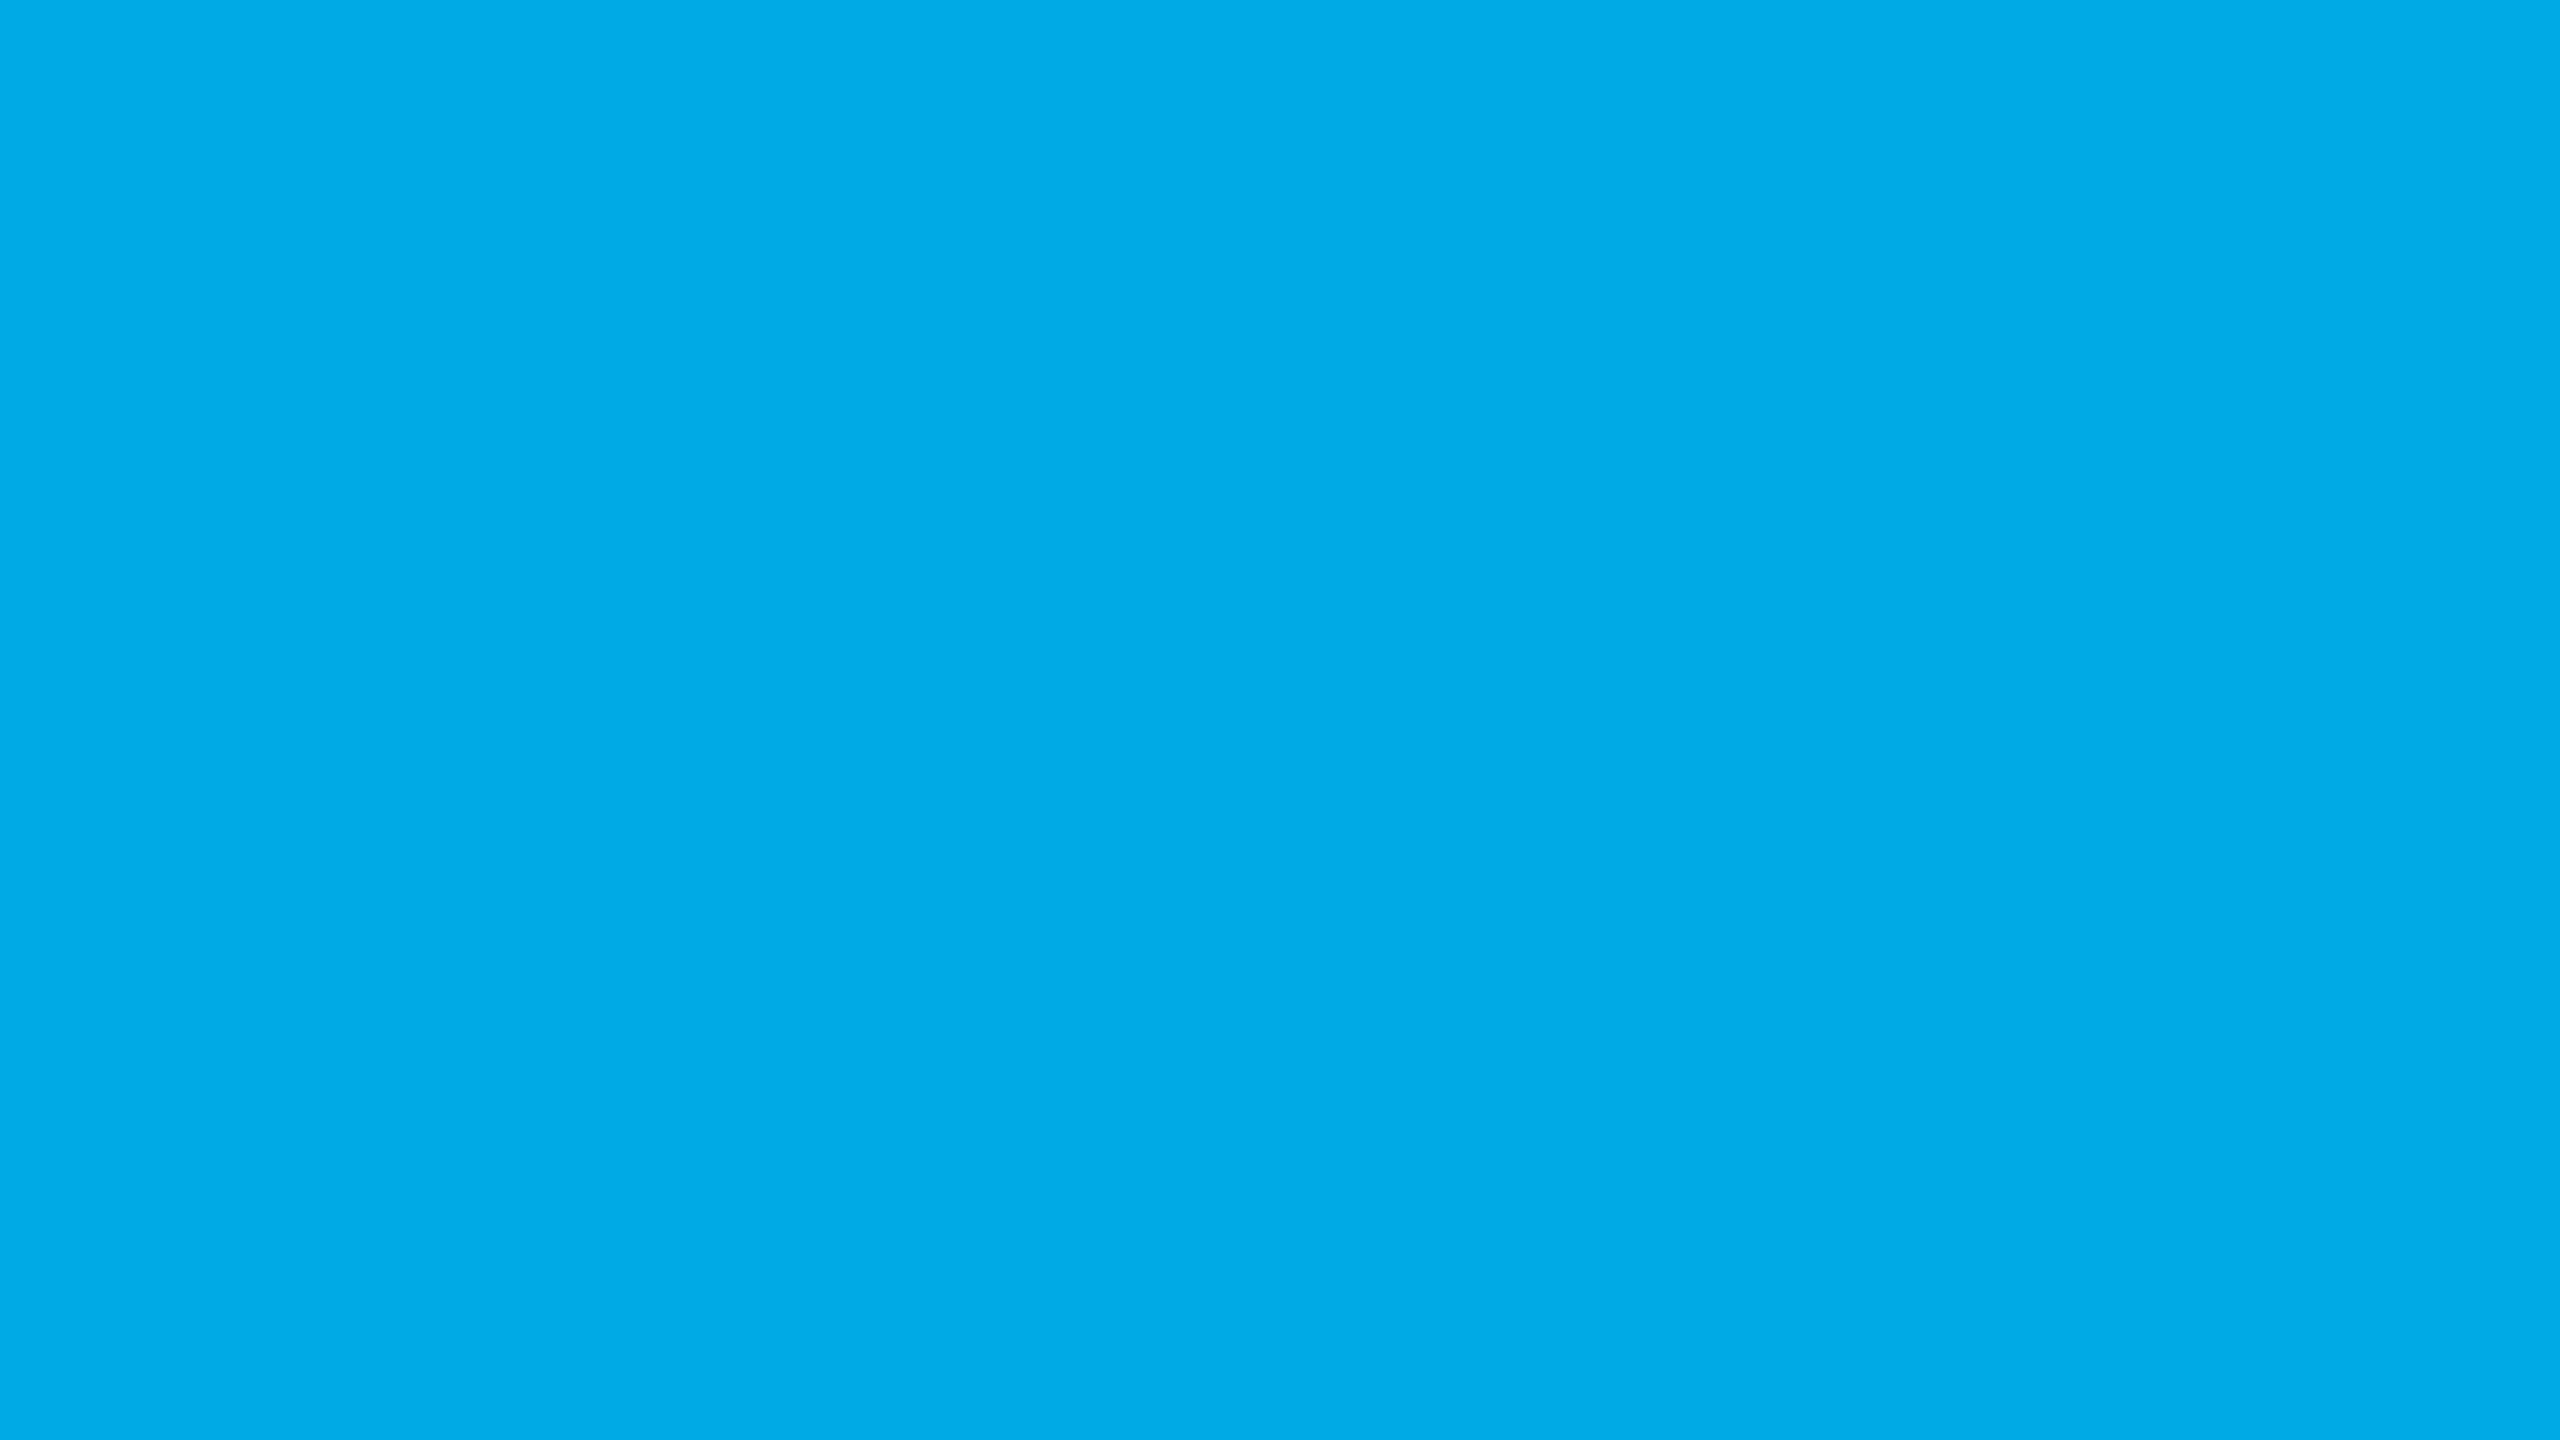 2560x1440 Spanish Sky Blue Solid Color Background